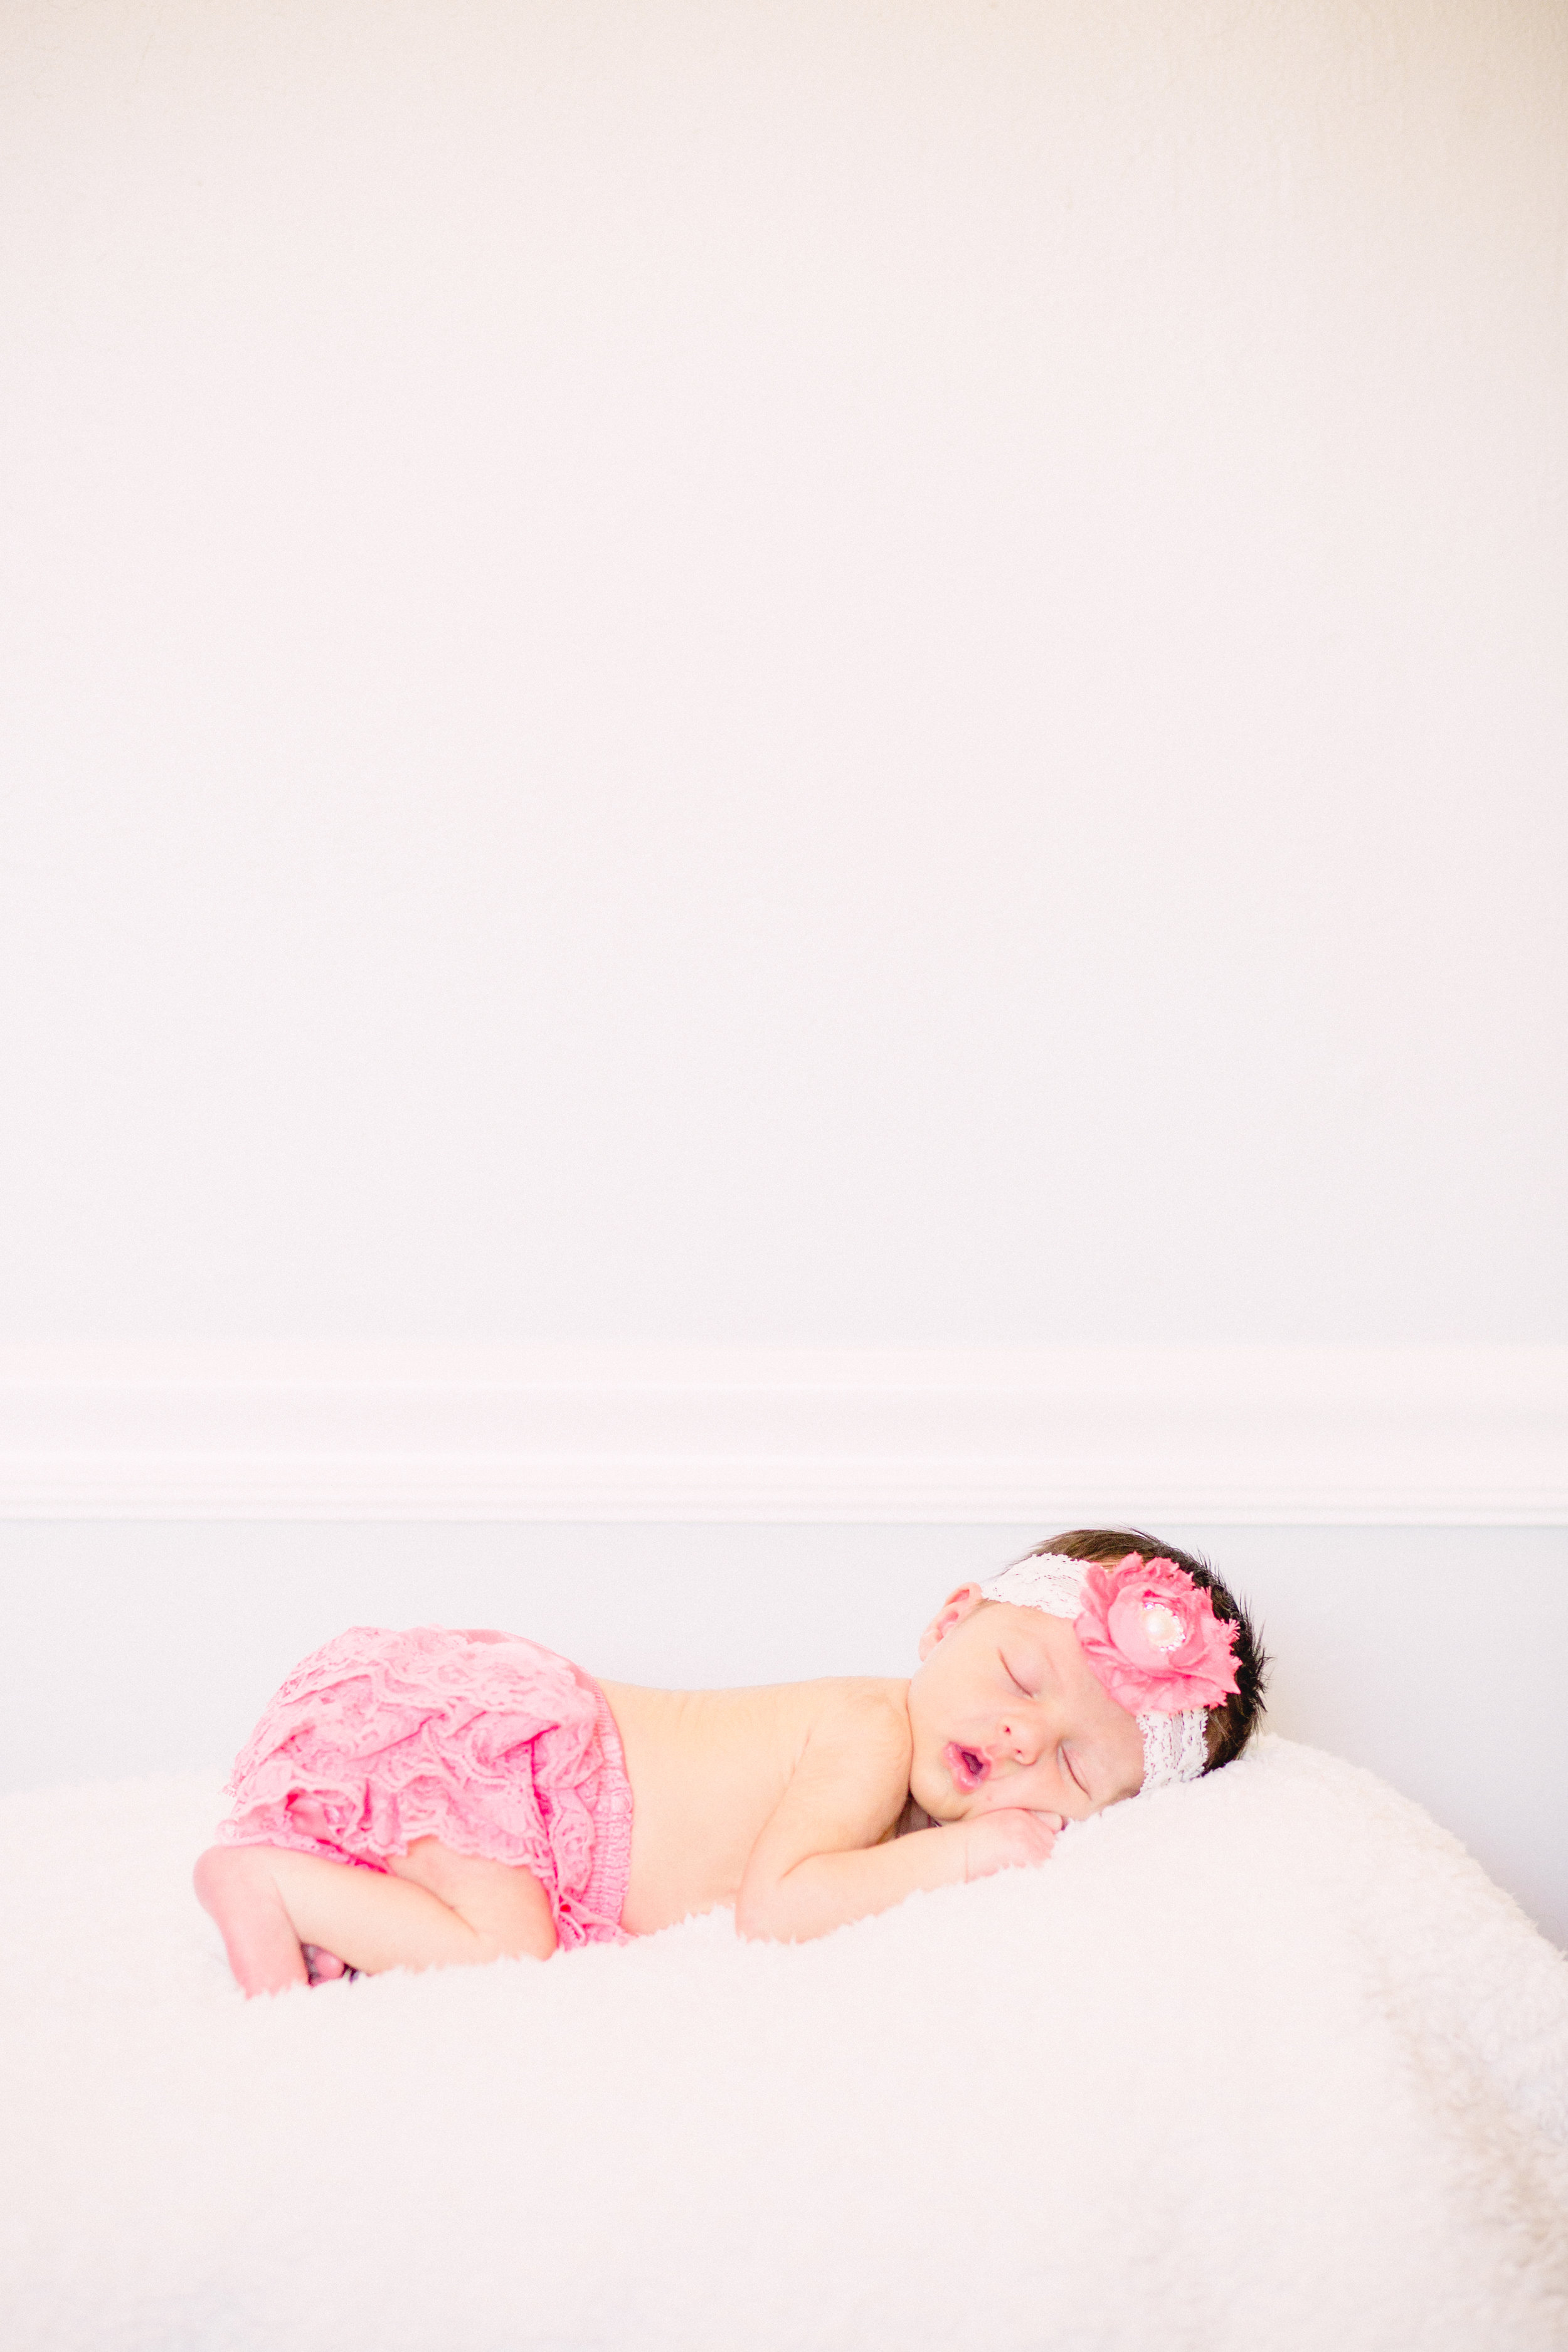 ALacey_Michelle_Photography_LR-9307.jpg